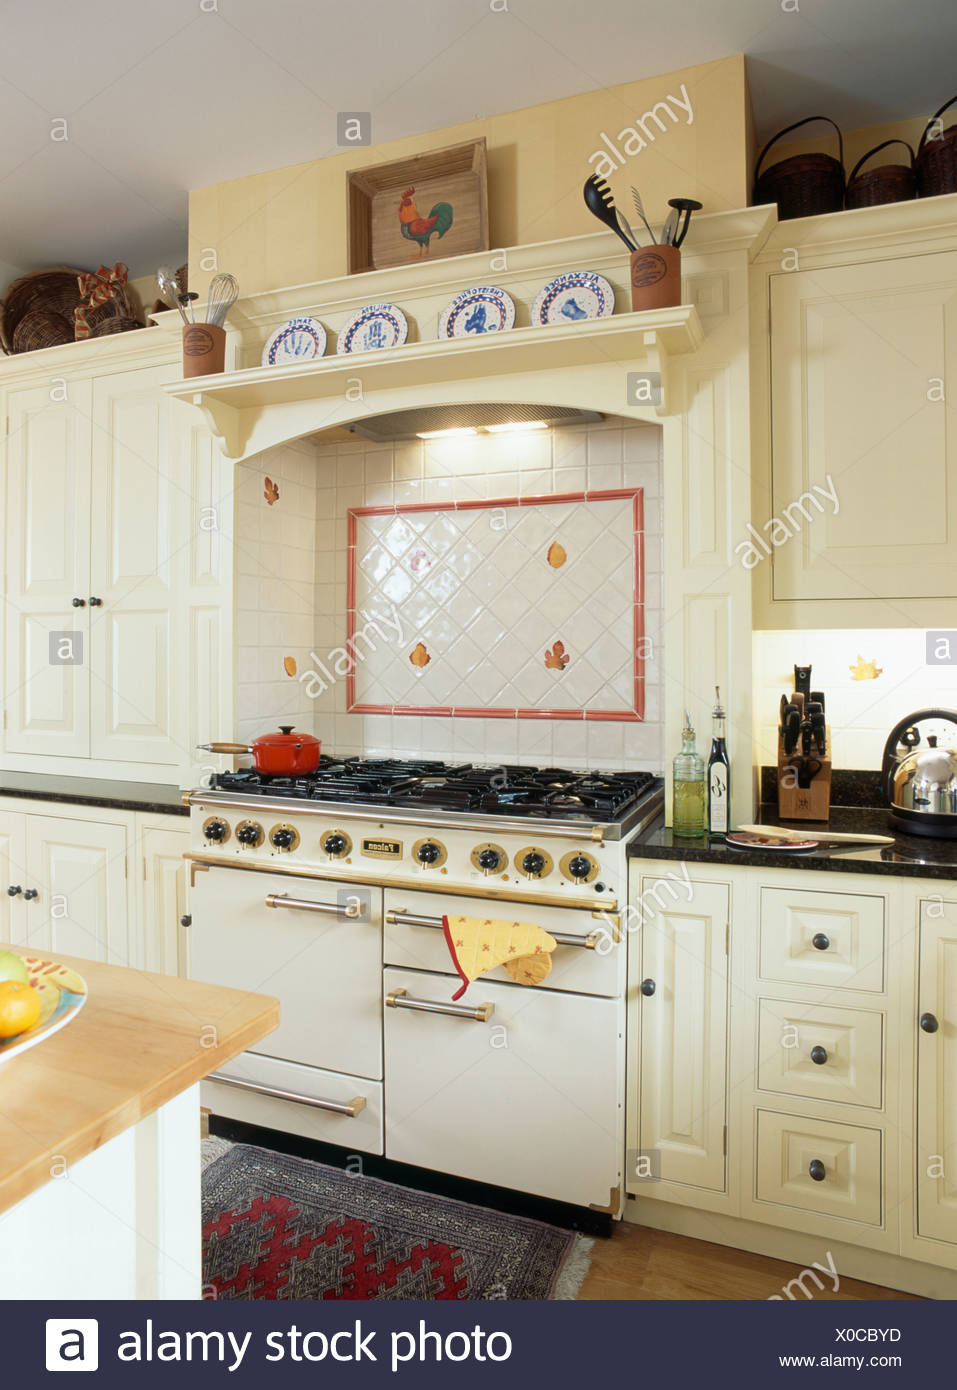 White and red wall tiles above white range oven in ...